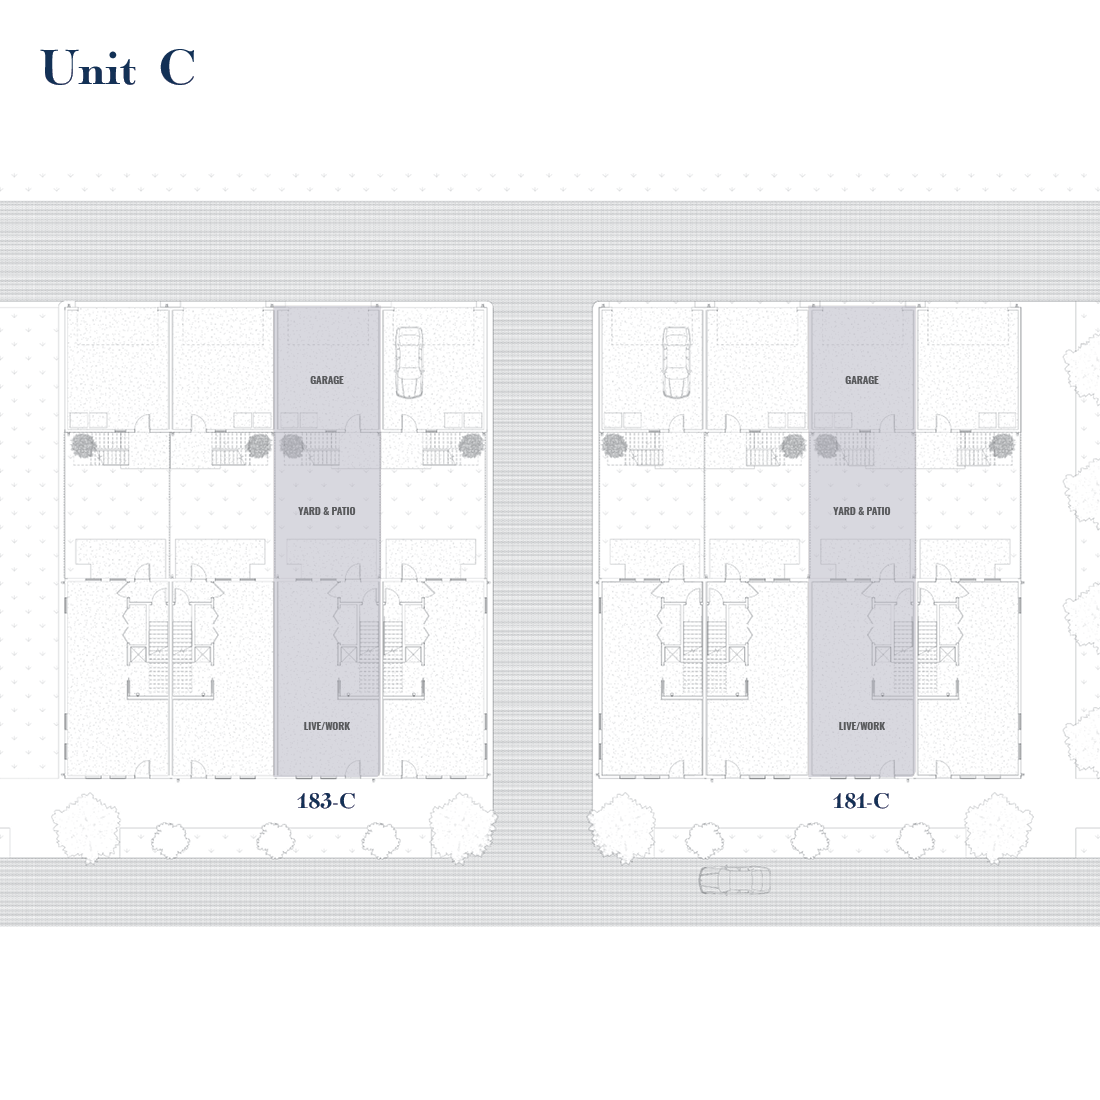 Unit C Site Plan   East Wilbur LiveWorks, Downtown Lake Mary